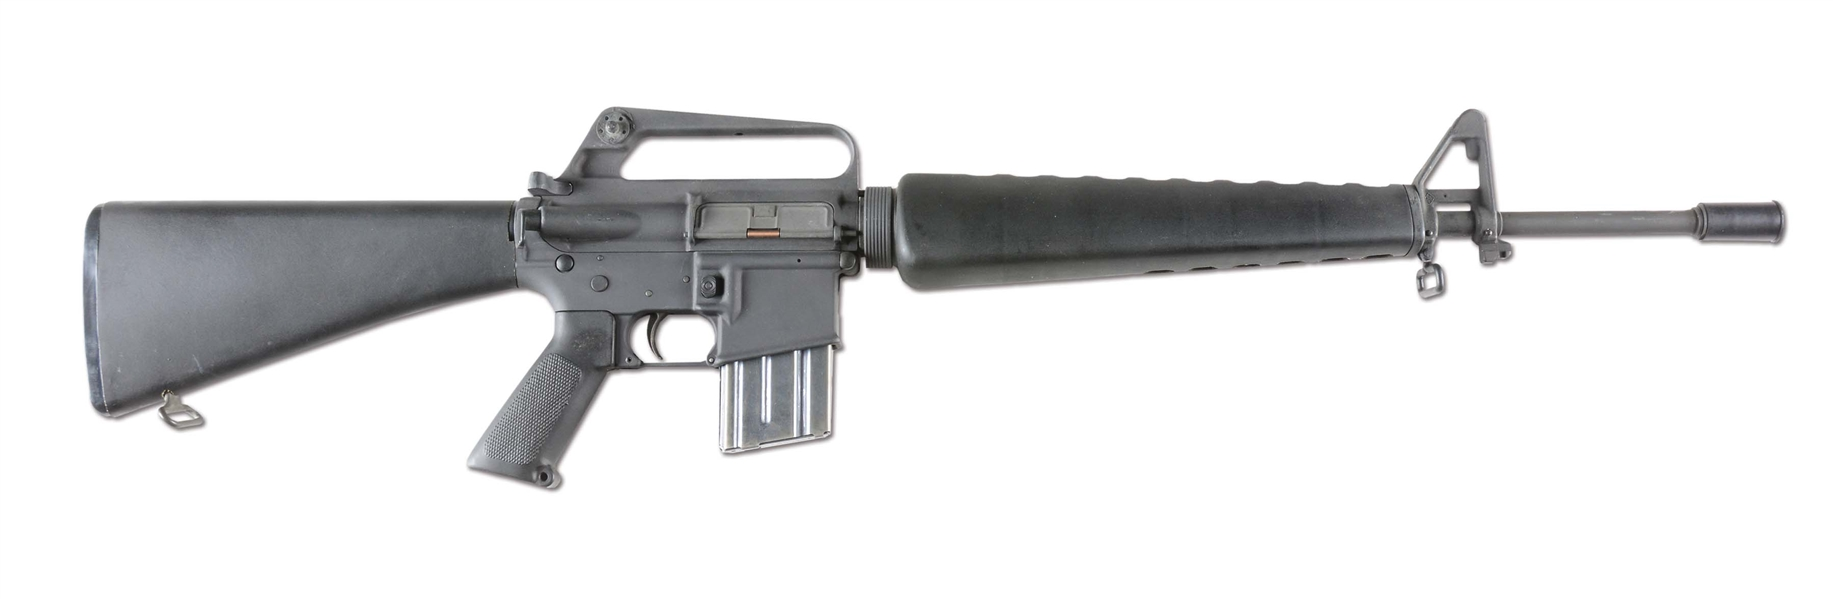 (N) EXCEPTIONAL HIGH CONDITION UNFIRED COLT M16A1 MACHINE GUN (FULLY TRANSFERABLE).